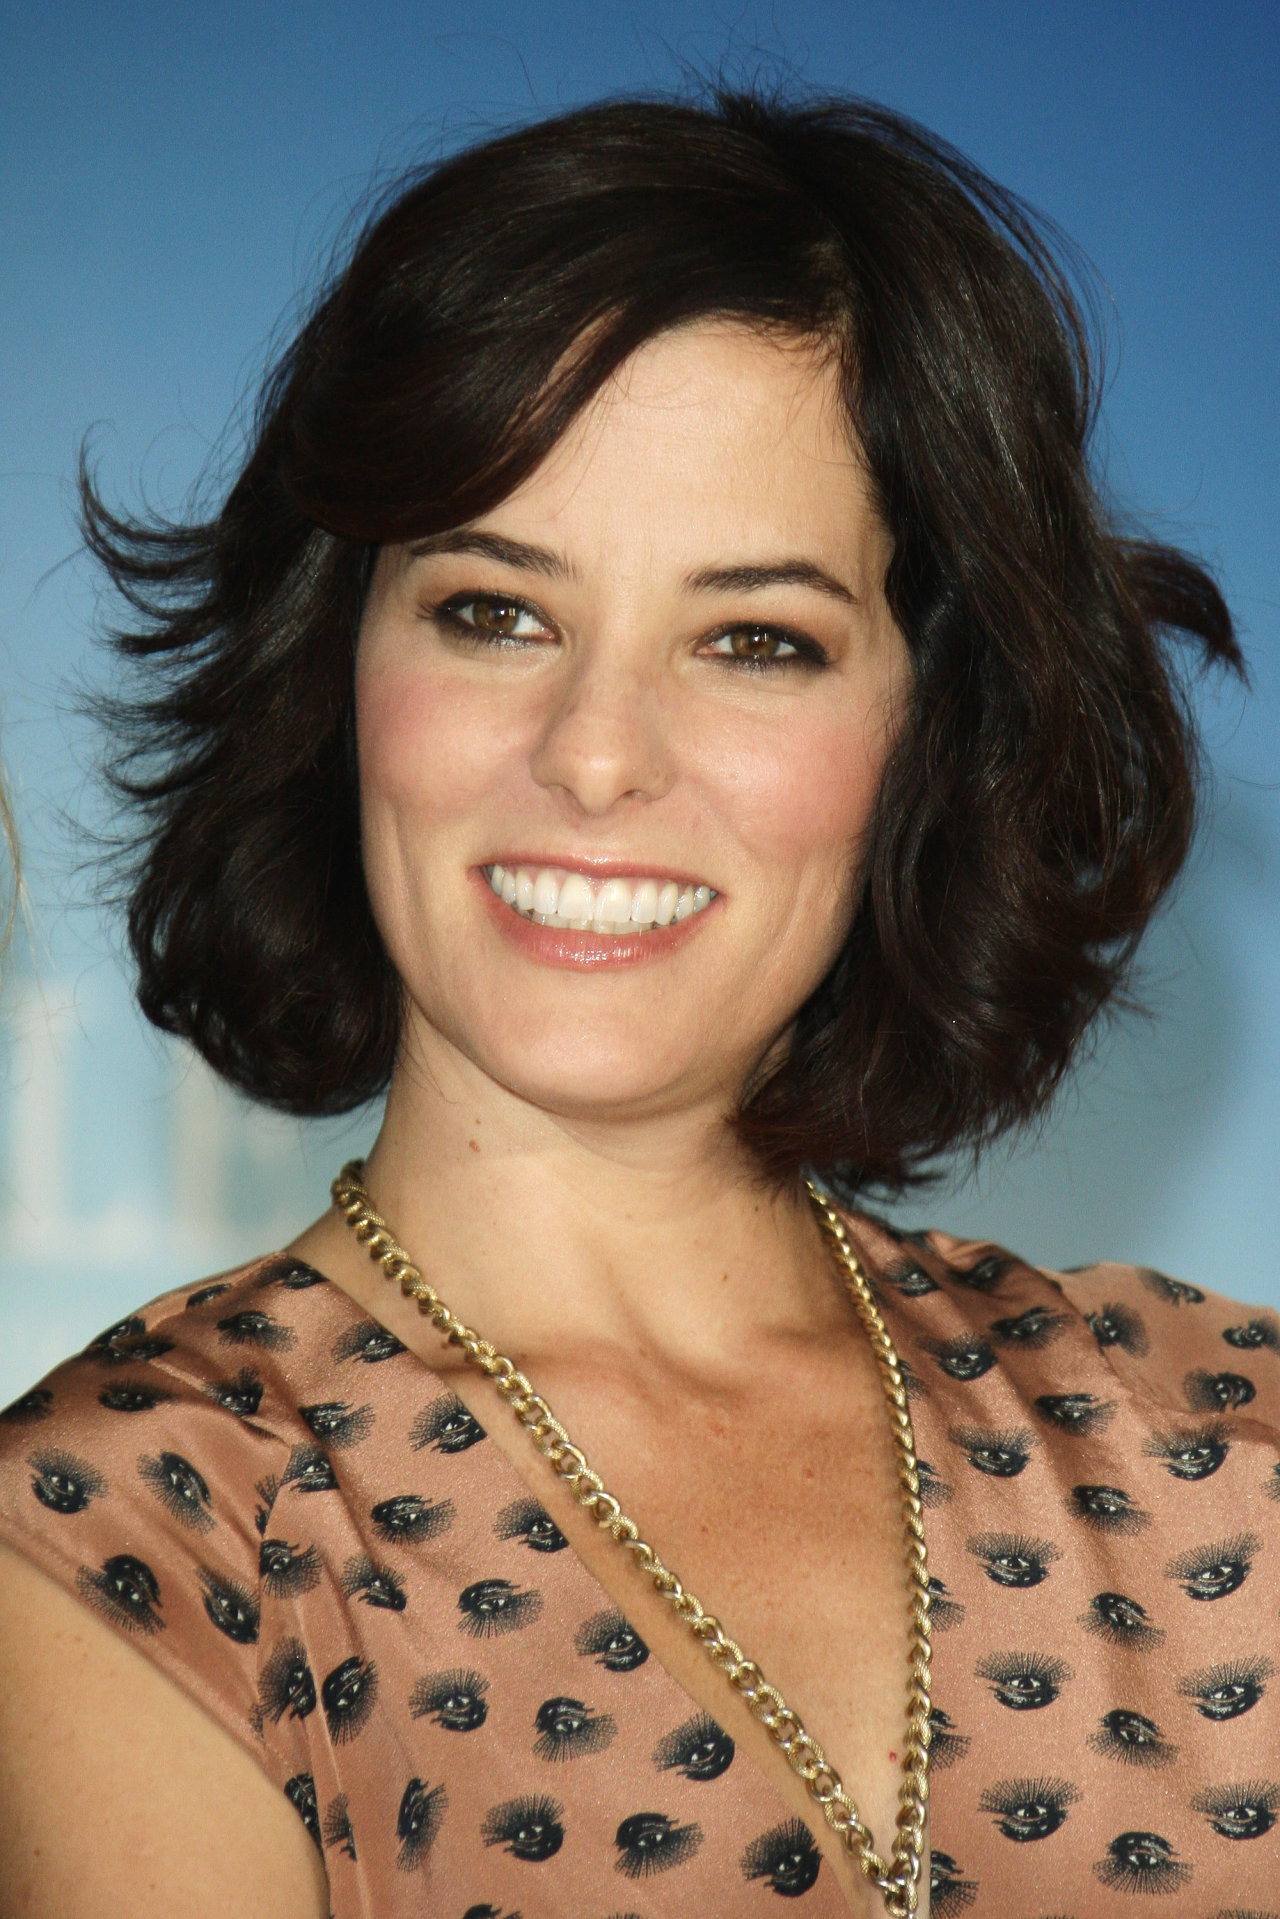 Parker Posey earned a  million dollar salary, leaving the net worth at 10 million in 2017